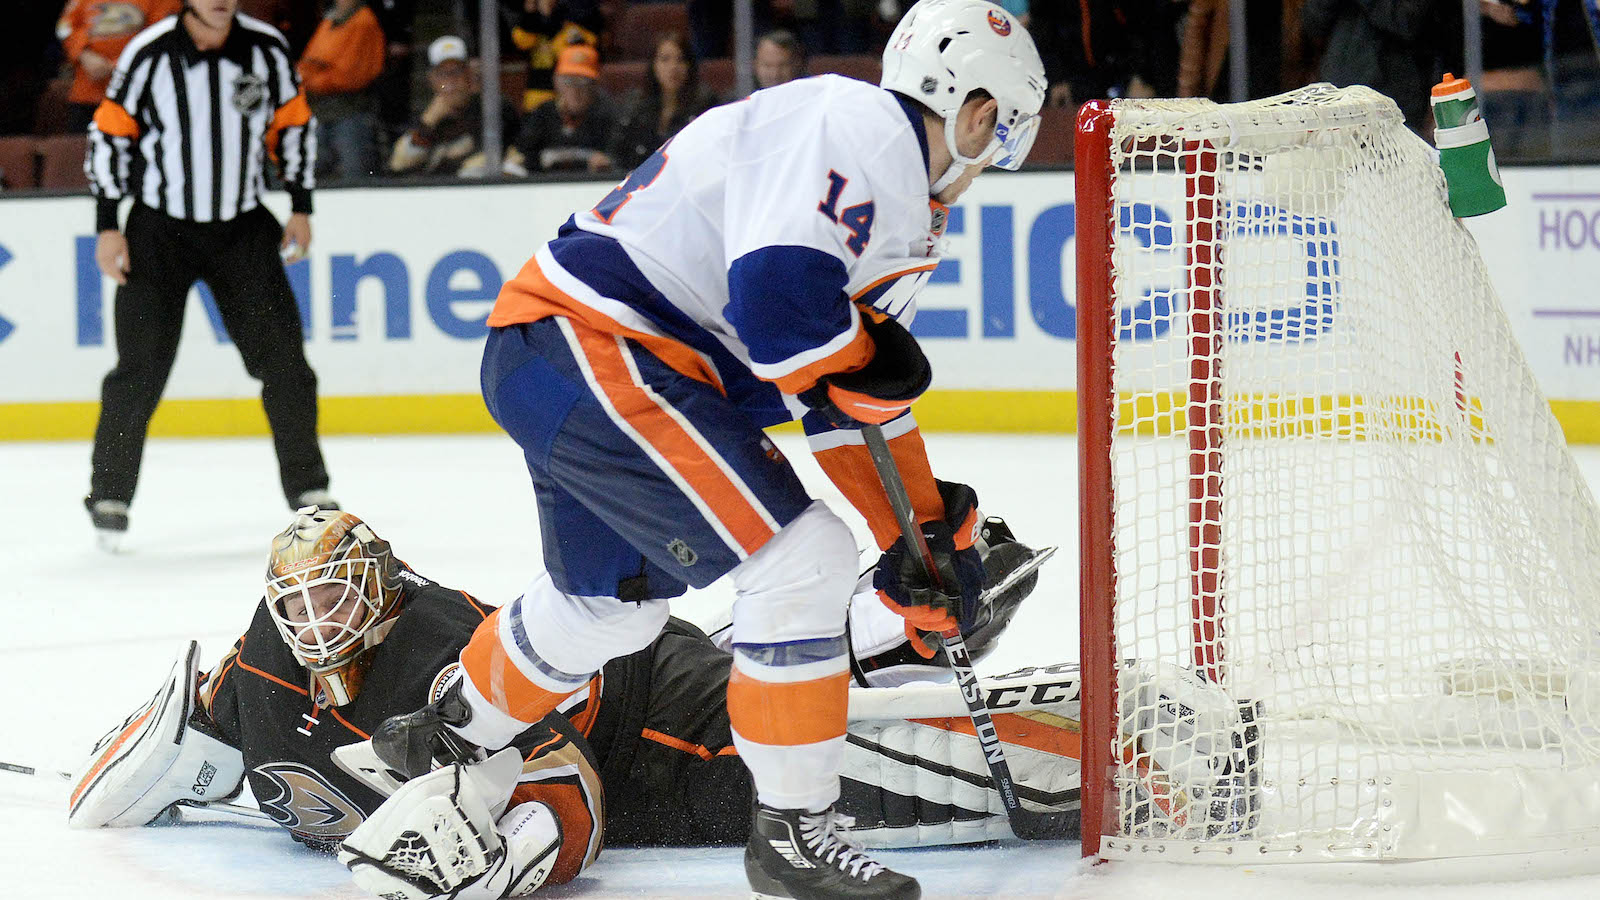 Islanders scored a controversial goal to help win marathon shootout